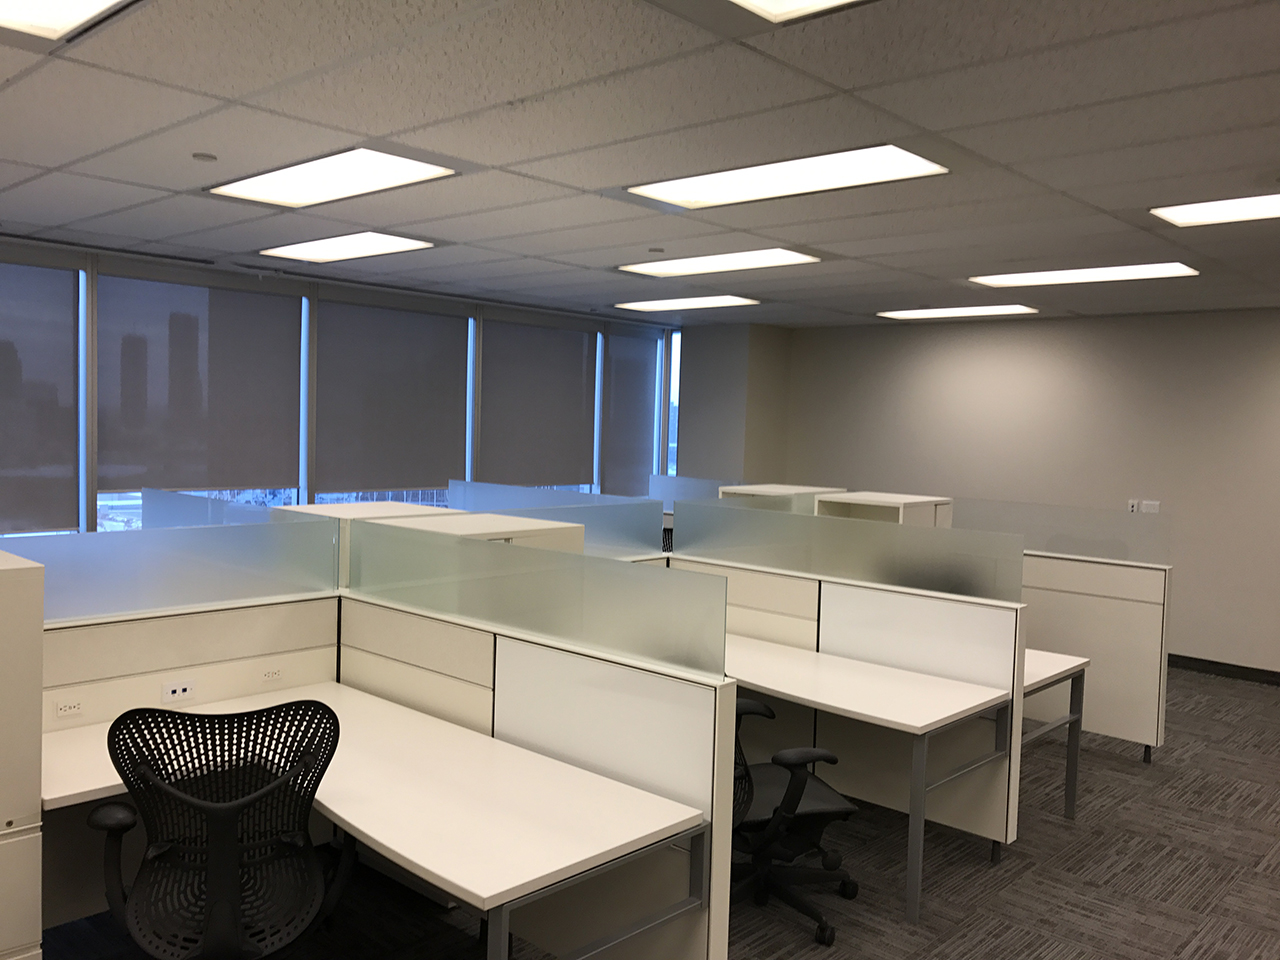 Superbe Office Remodeling Is One Of Brama Speciality Services. As Commercial And  Industrial Flooring Contractors We Know That Office Remodeling Can Range  From ...